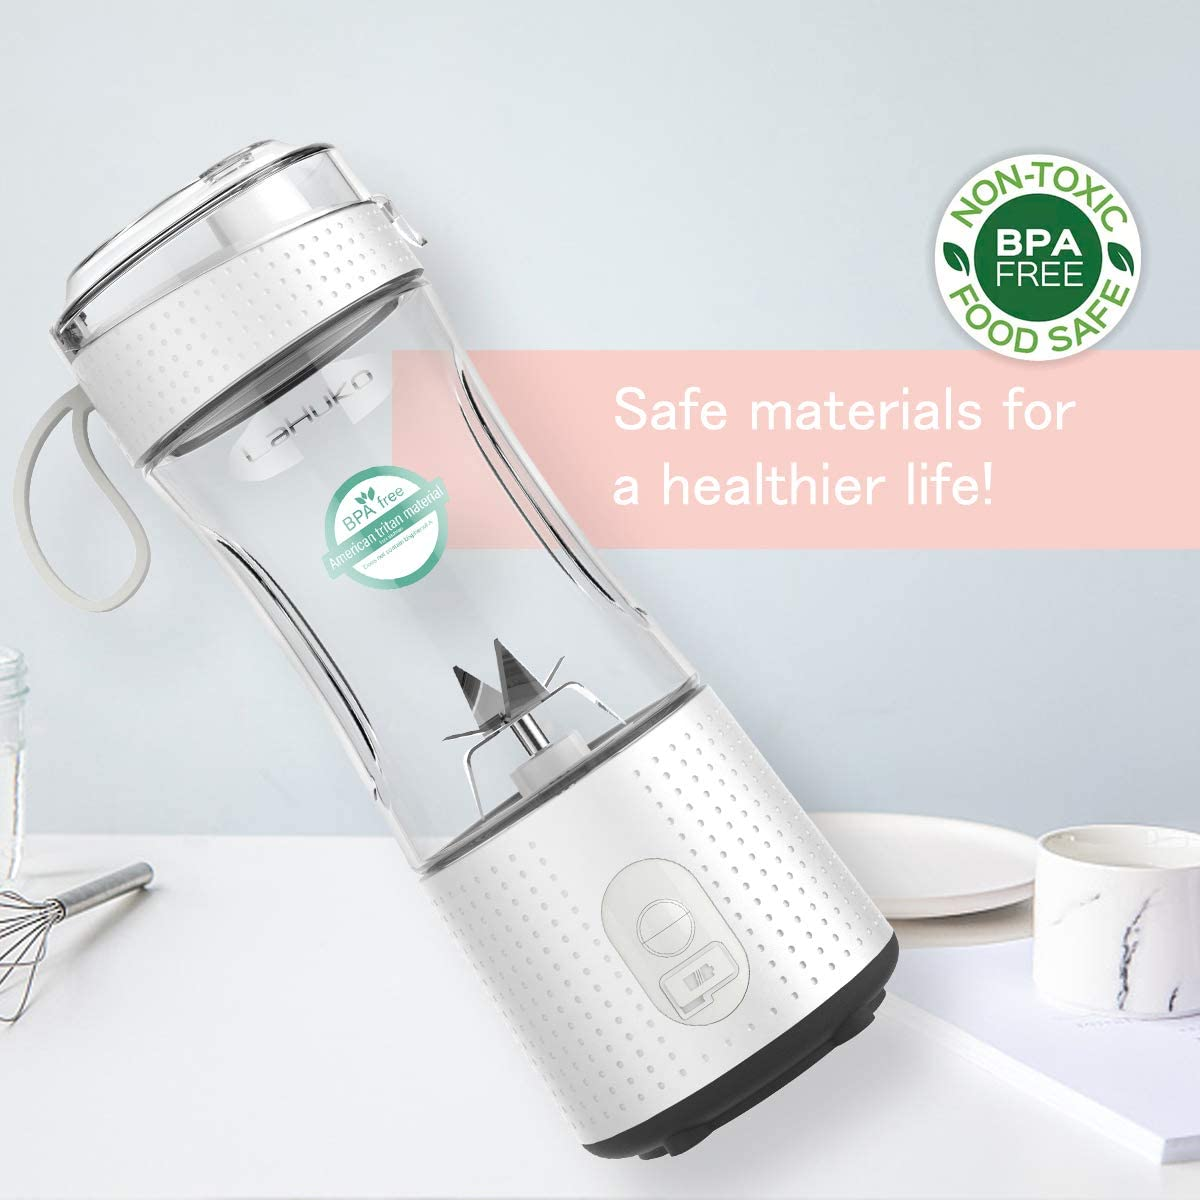 LaHuko Blender Portable Blender Personal Size Blender Juicer Cup for Juice Crushed-ice Smoothie Shake with Six Blades, 4000mAh USB Rechargeable, Blender for Outdoor Picnic Travel Gym: Kitchen & Dining